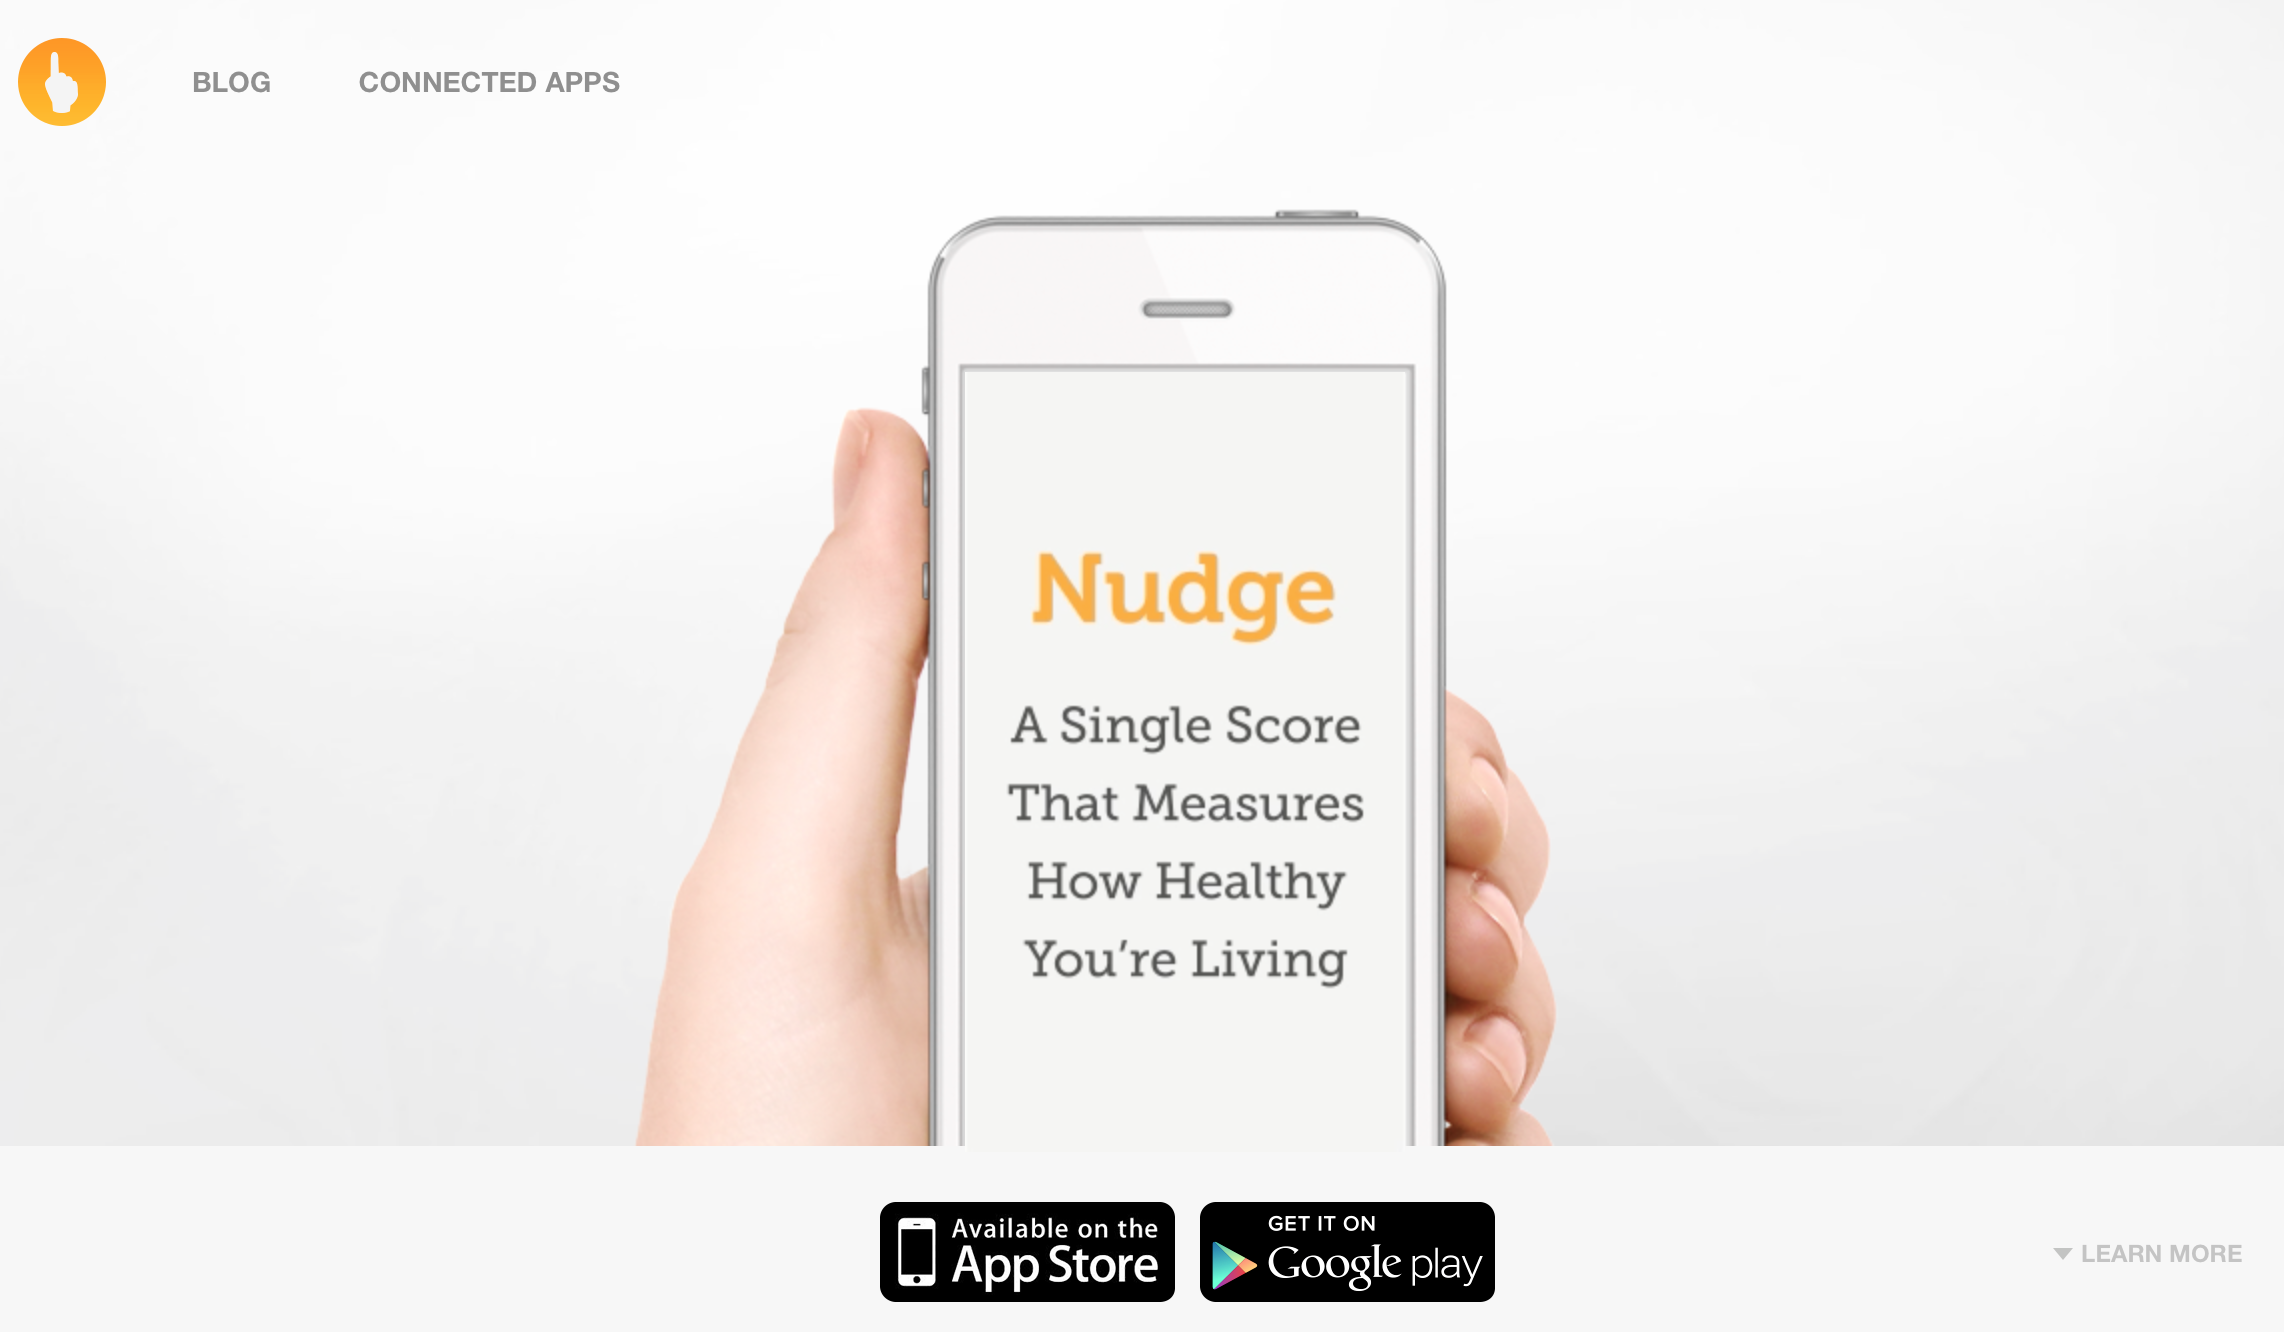 The Nudge App is a HIPPA compliant, easy-to-use, patient-centered App that is effective for passive and active collection of lifestyle behaviors that impact health and well-being.